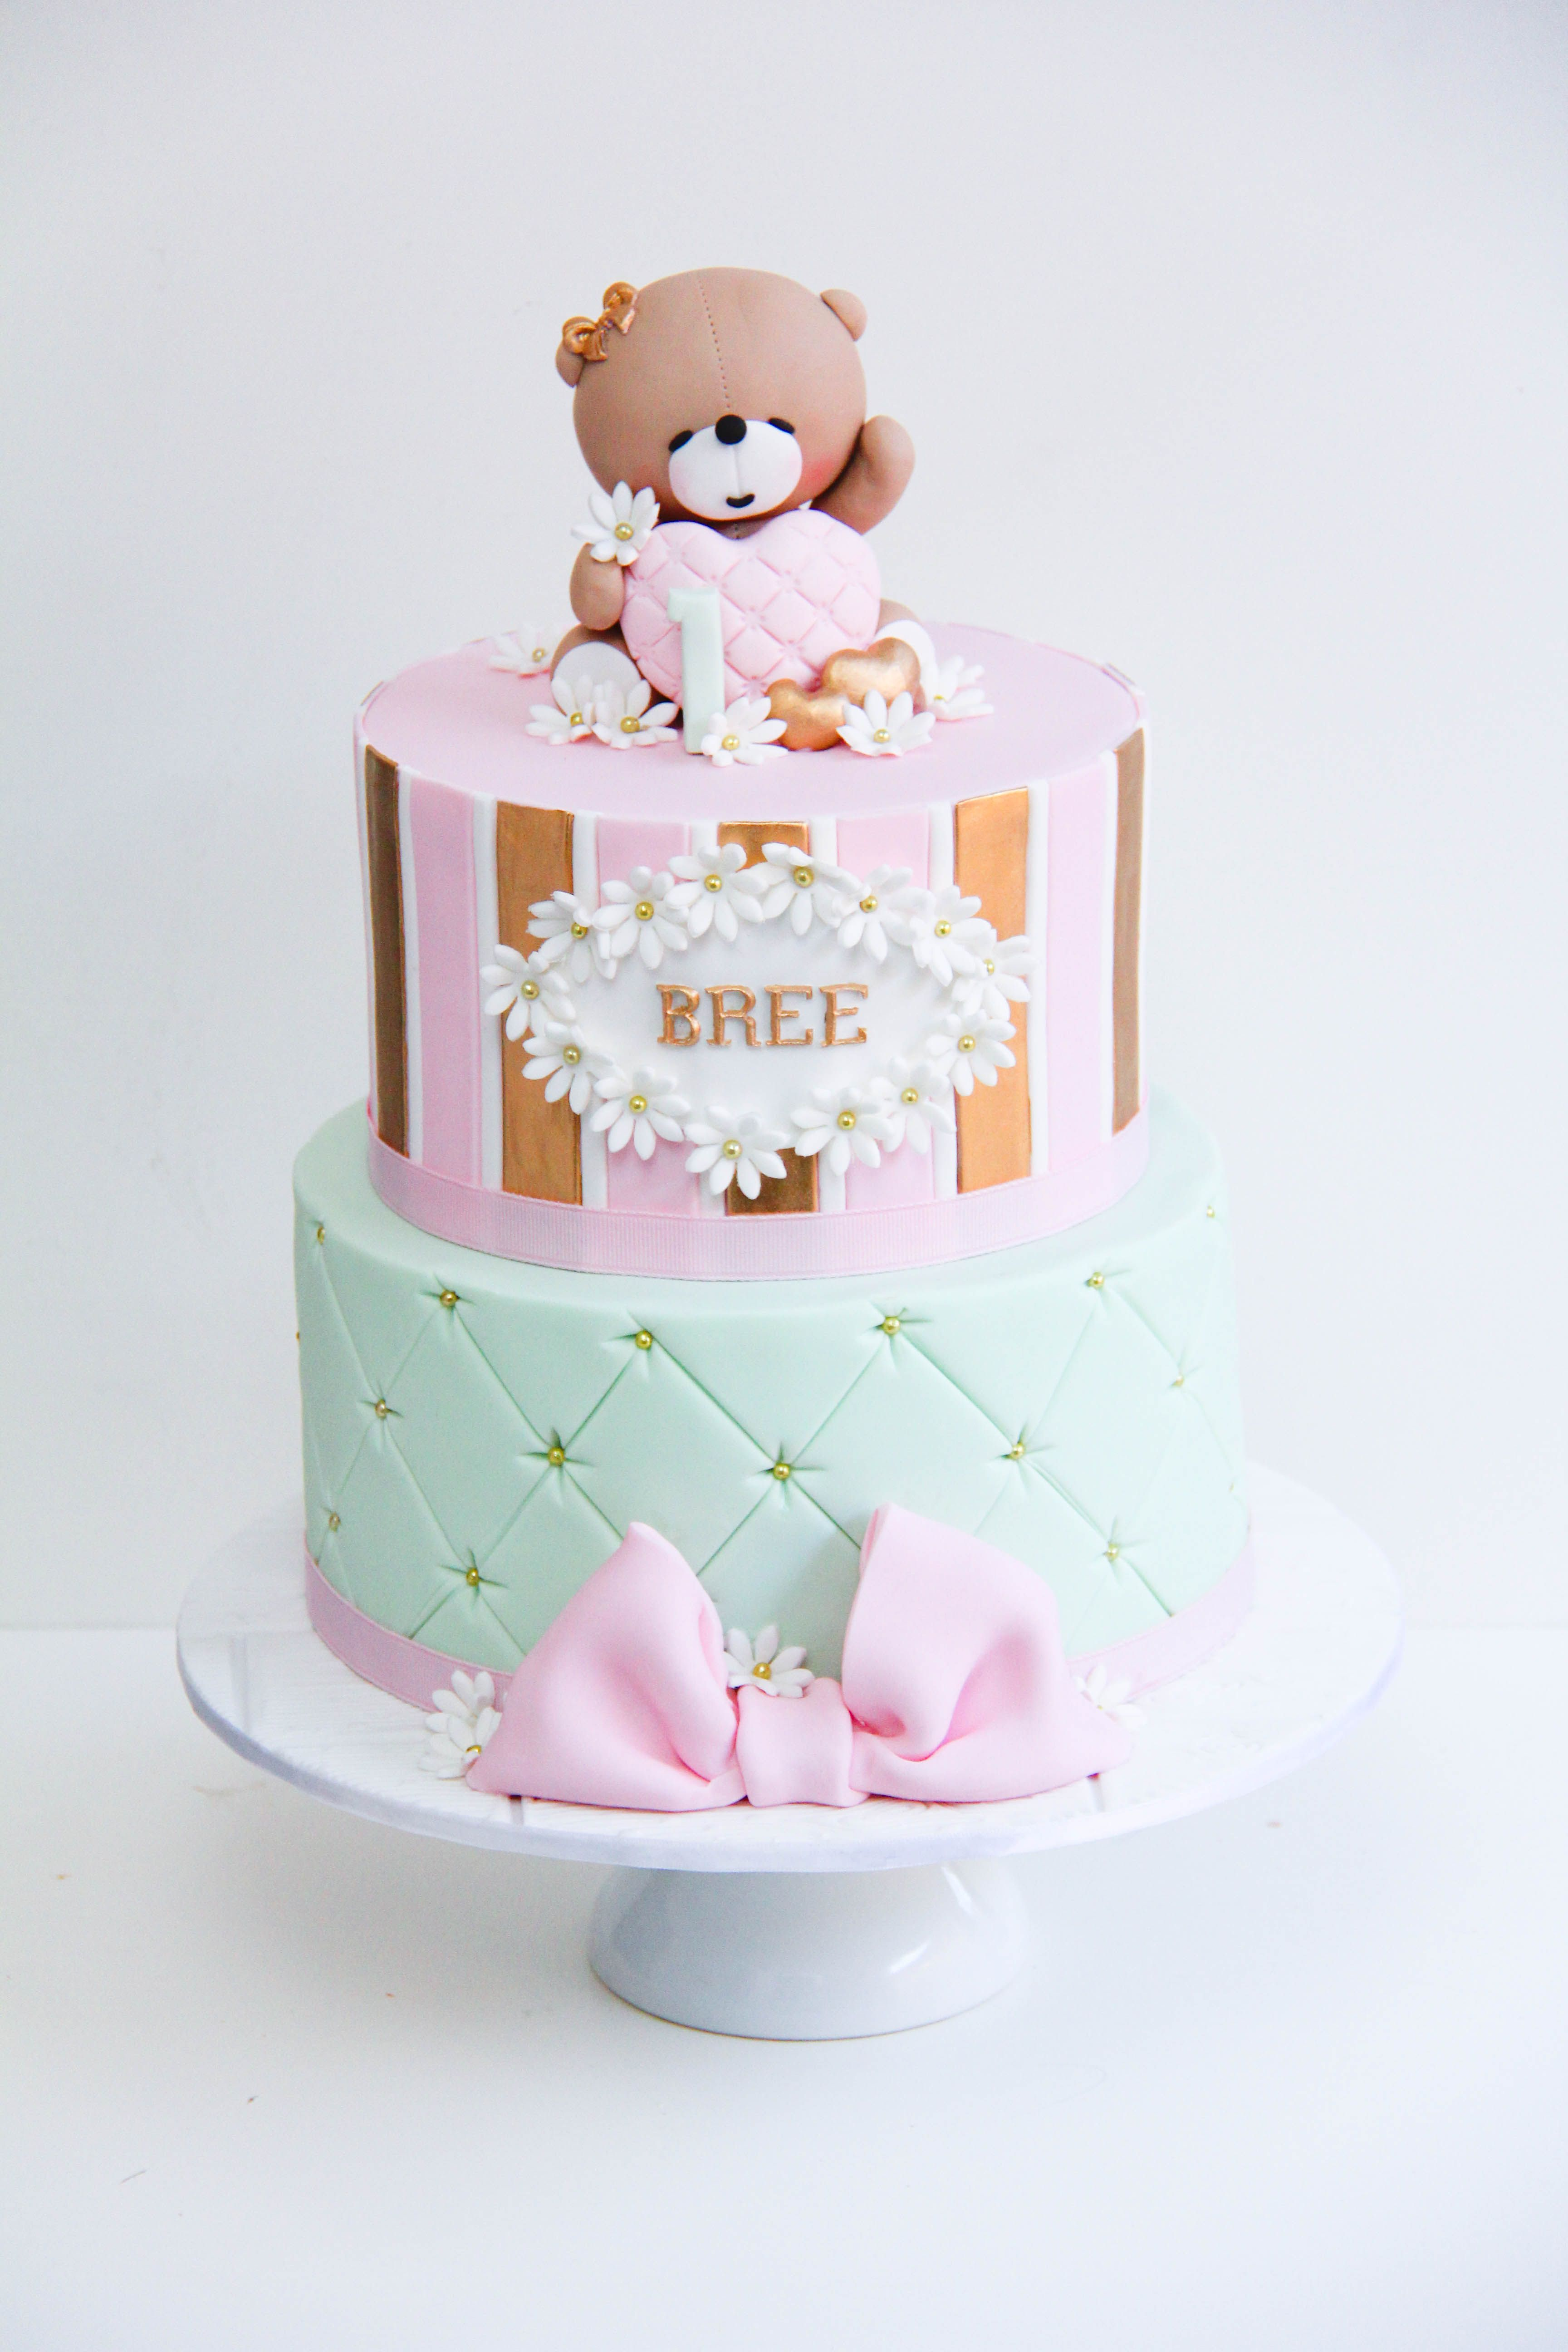 Admirable Baby Shower Girl Baby Birthday Cakes Teddy Bear Birthday Cake Funny Birthday Cards Online Fluifree Goldxyz